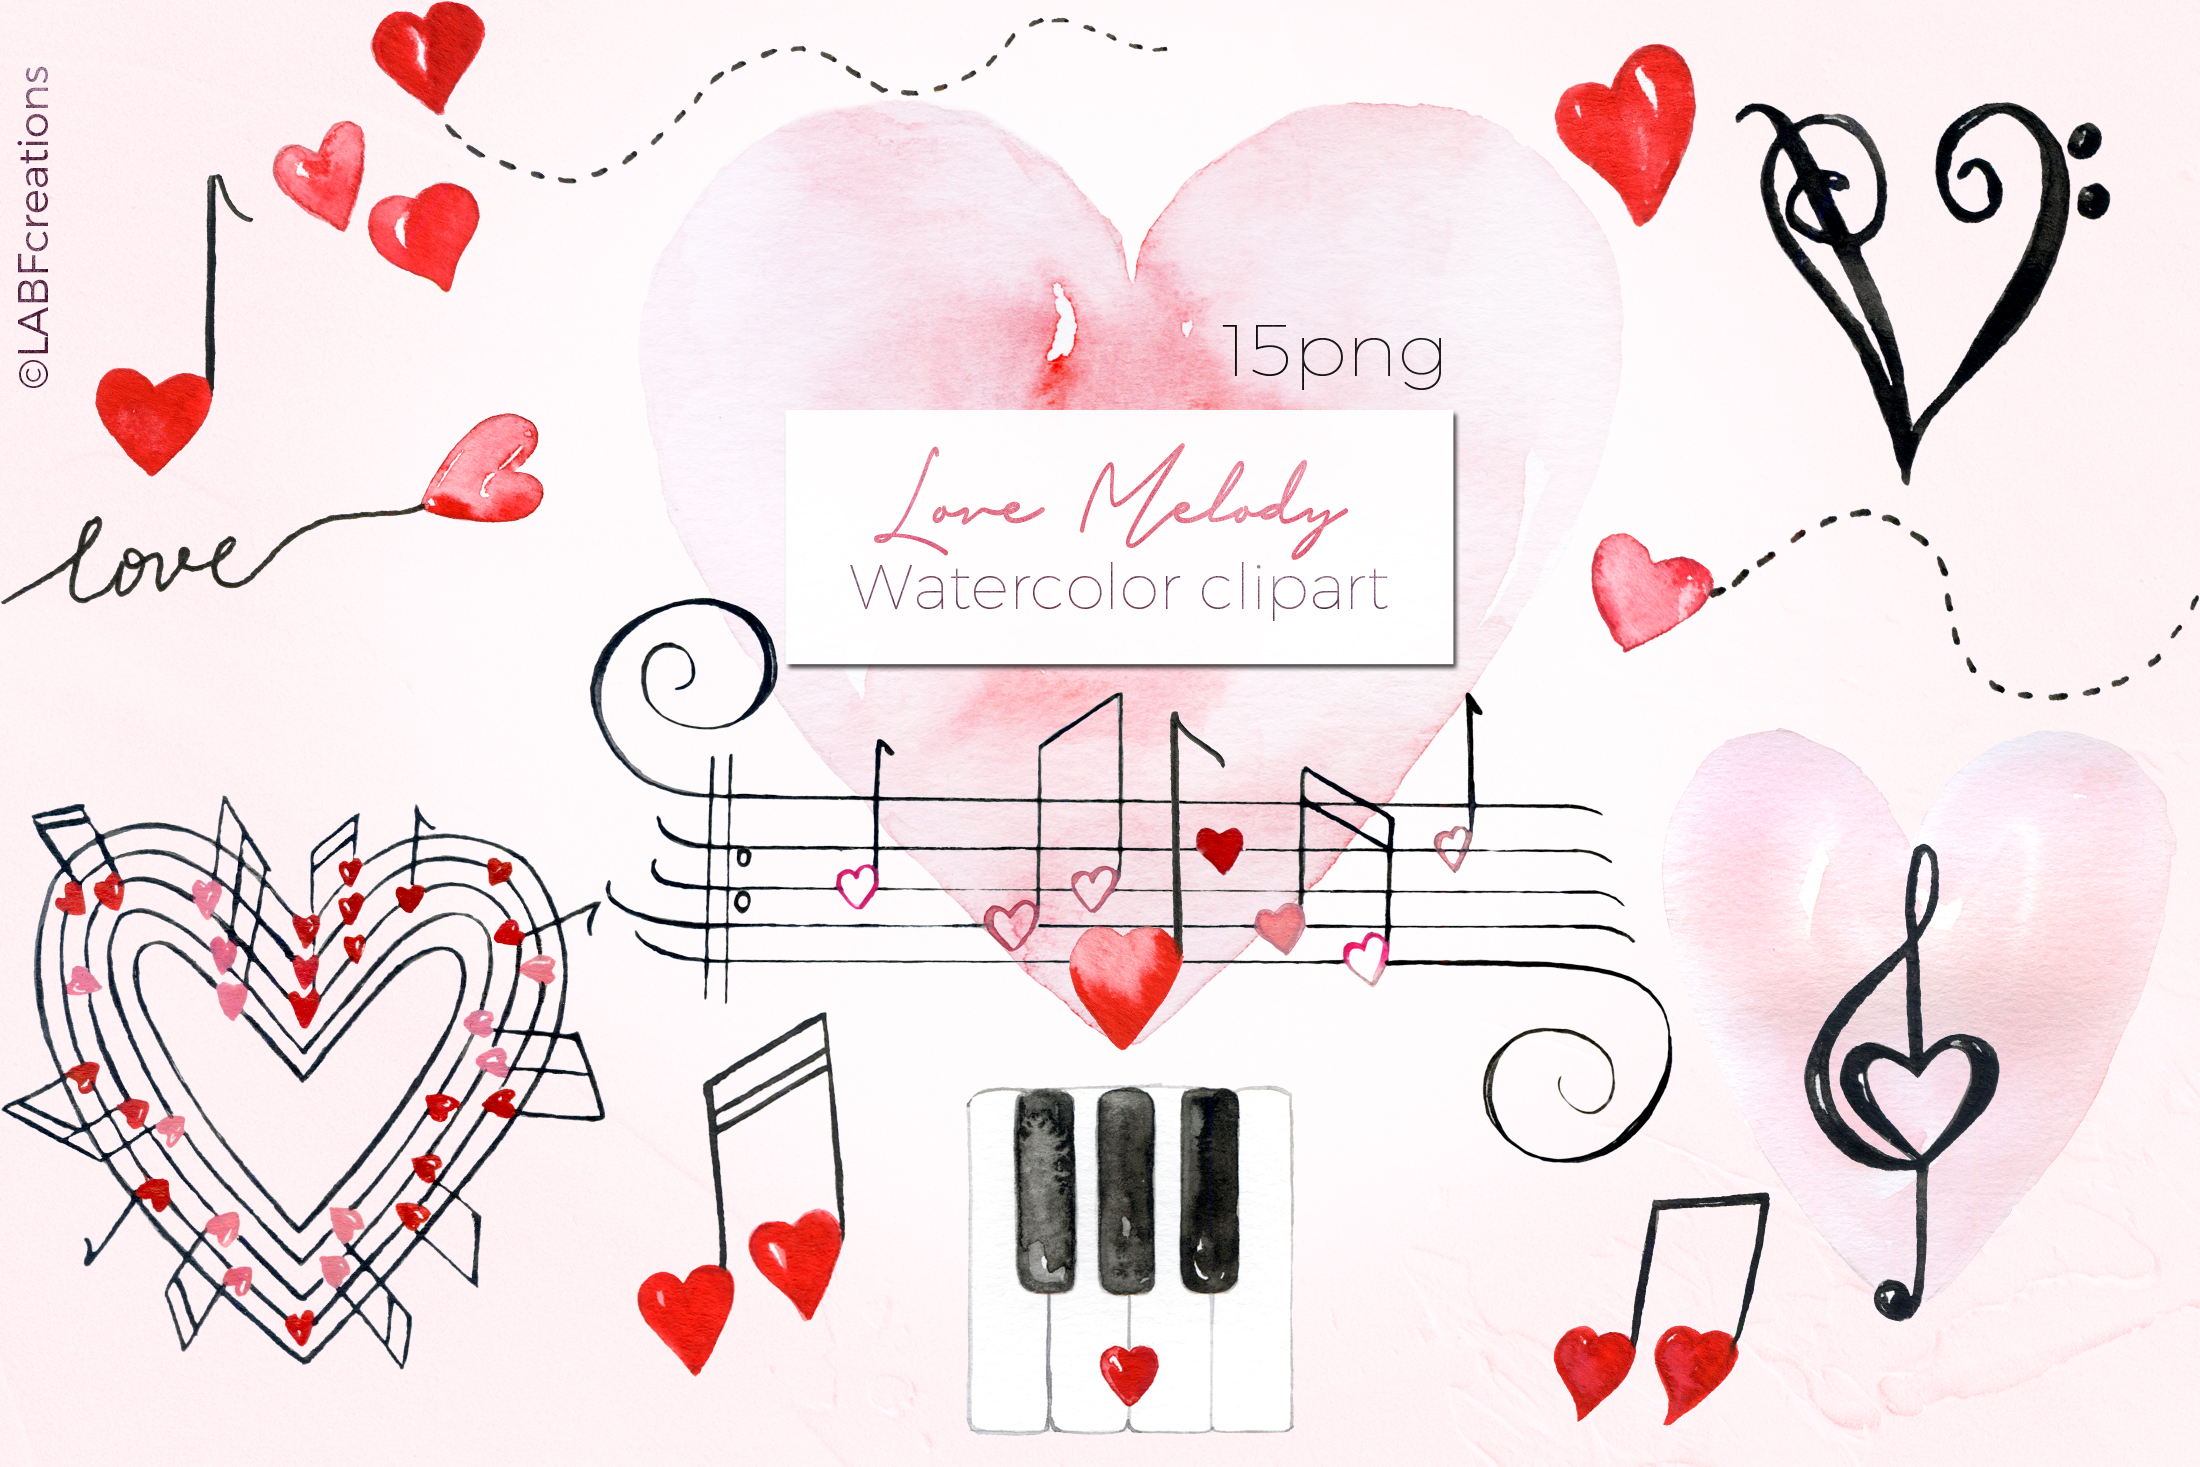 Love melody. Watercolor clipart example image 7